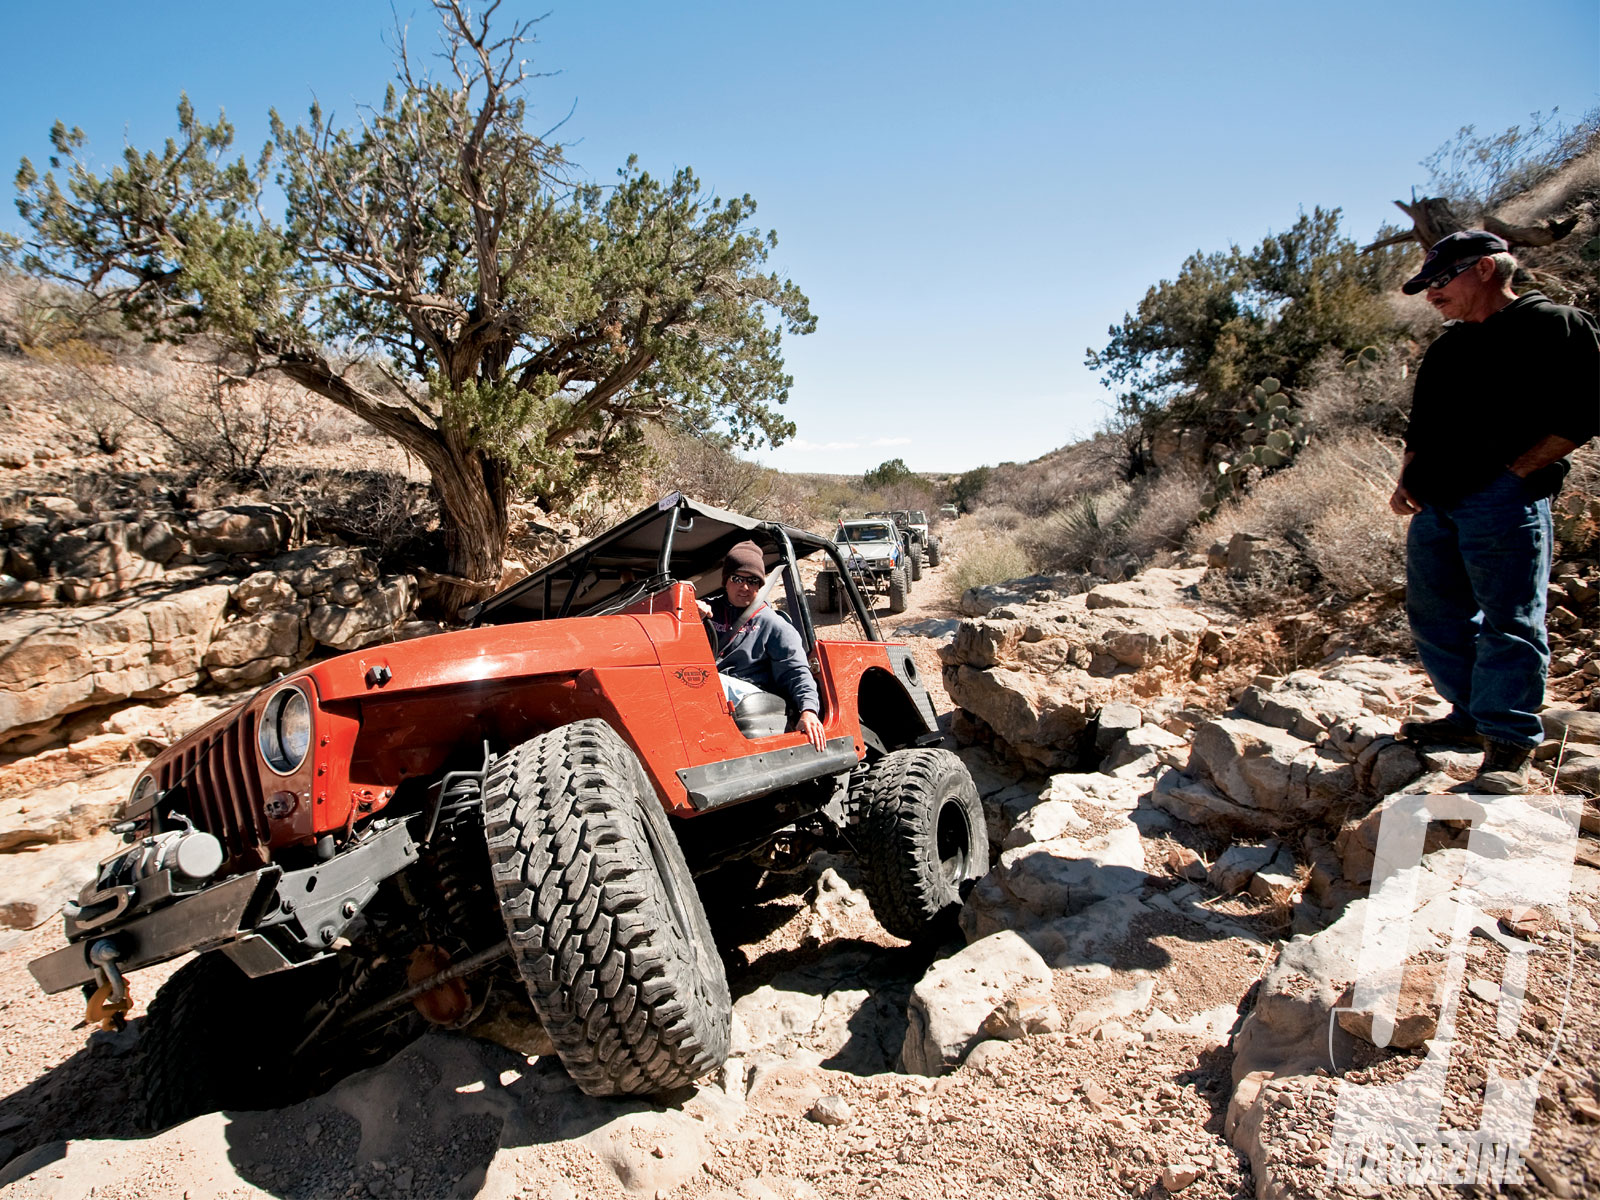 143 1103 11 o+154 1103 chile challenge las cruces new mexico+daniels jeep wrangler tj